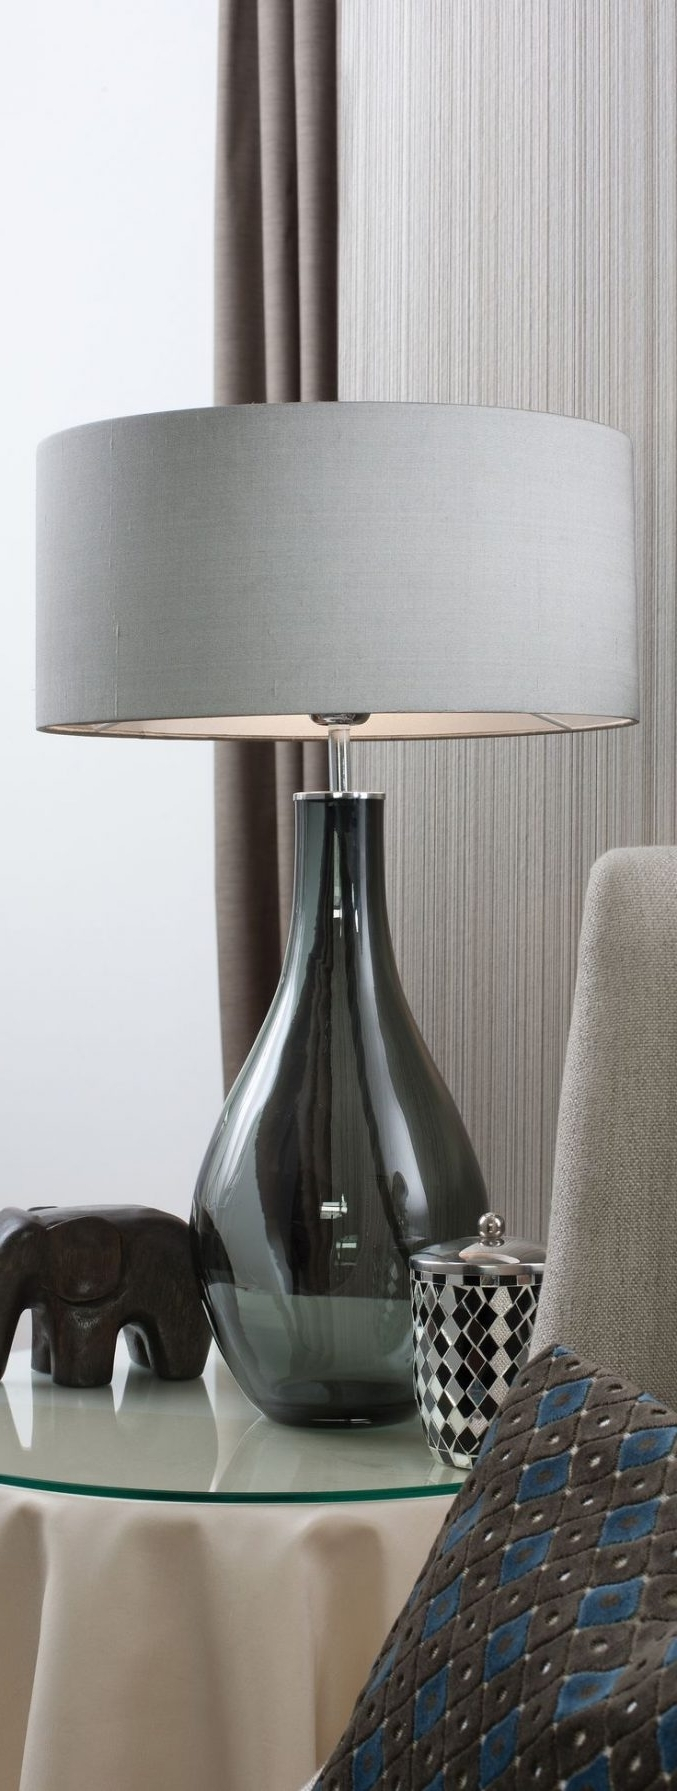 End Tables : Unbelievable Floor Lamps Decorative For Living Room For Most Popular Pink Table Lamps For Living Room (View 12 of 20)